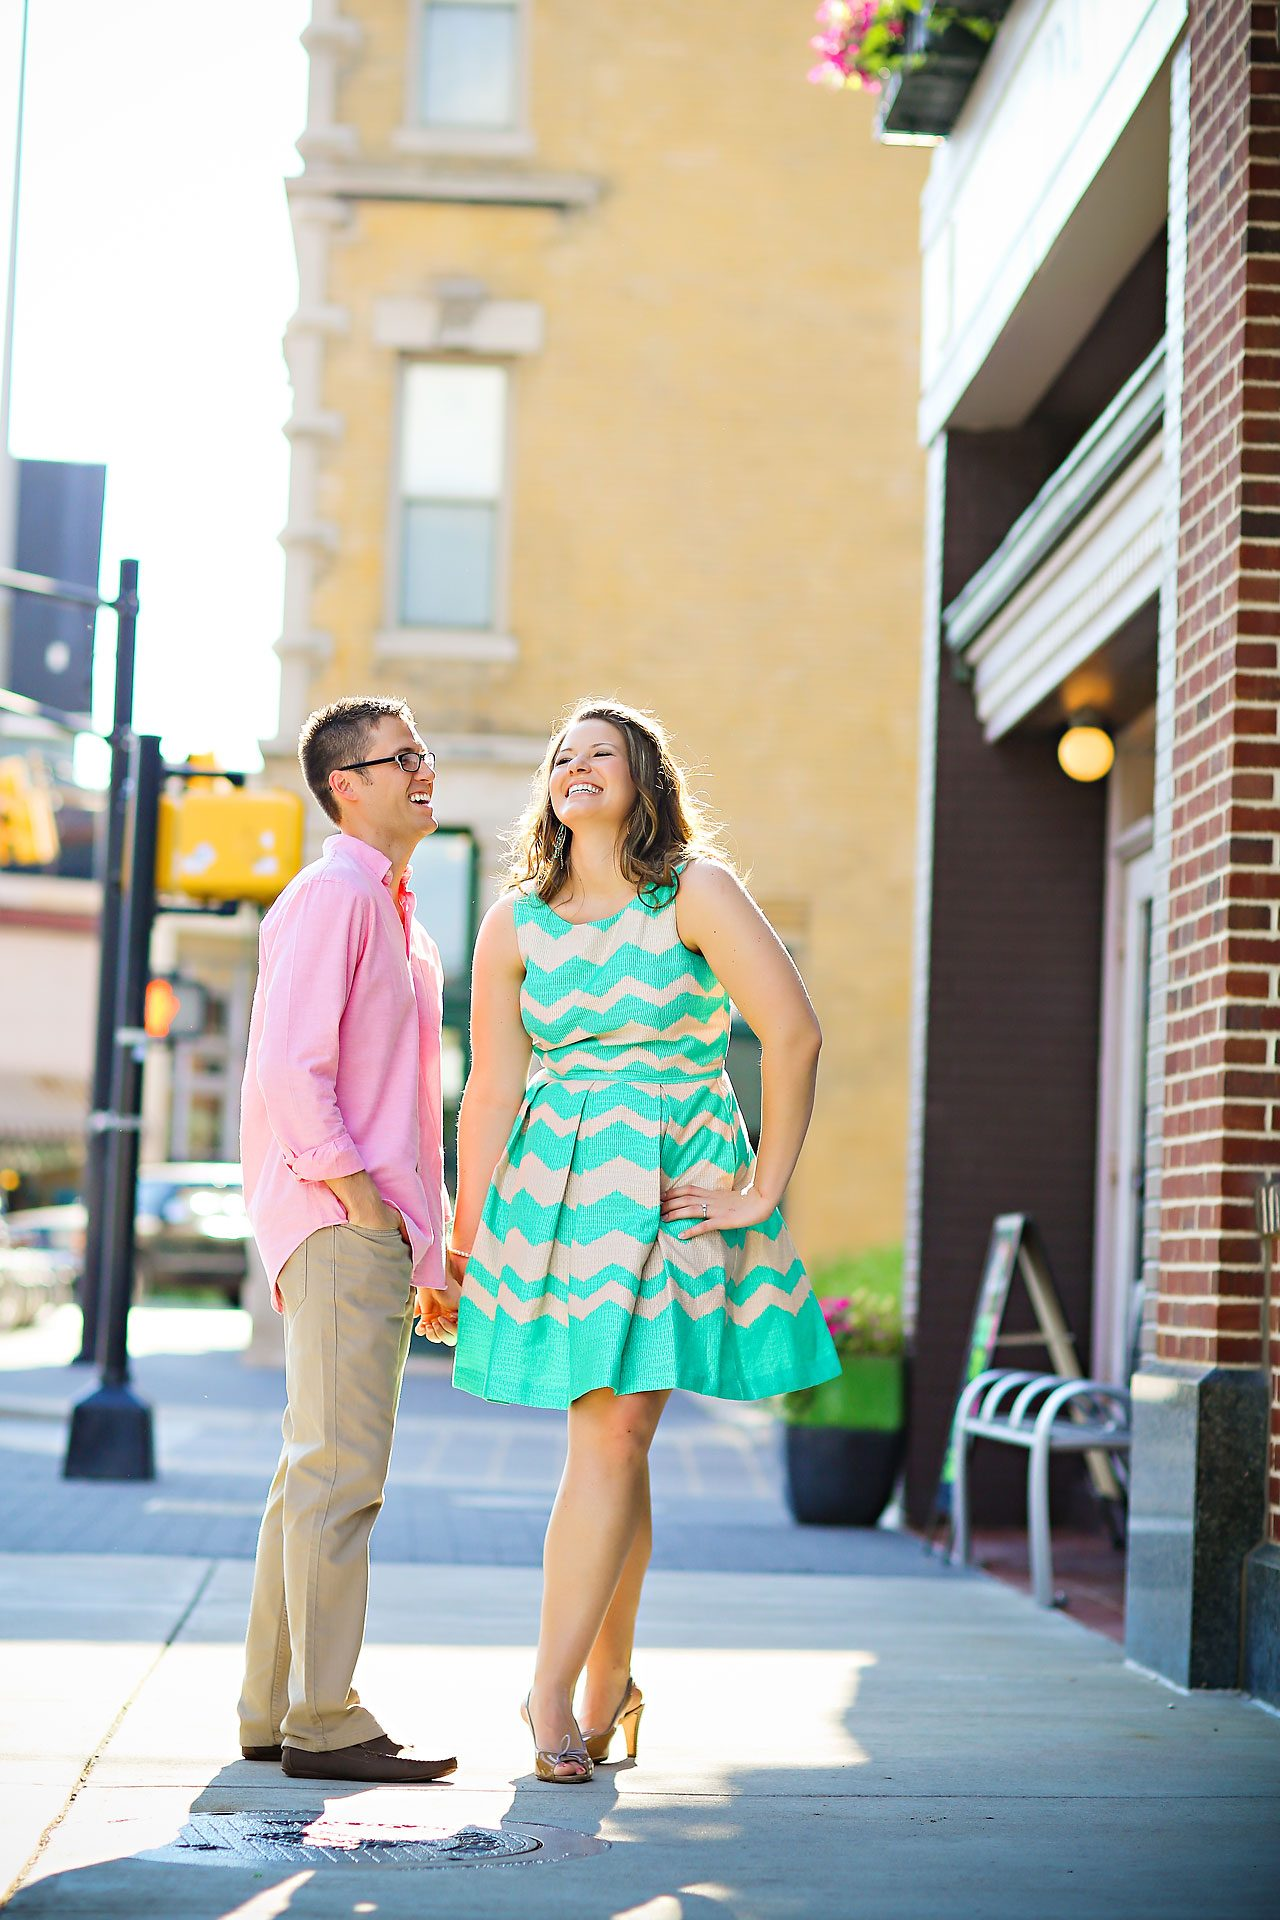 Indianapolis Engagement Photographer Kim Spencer 024